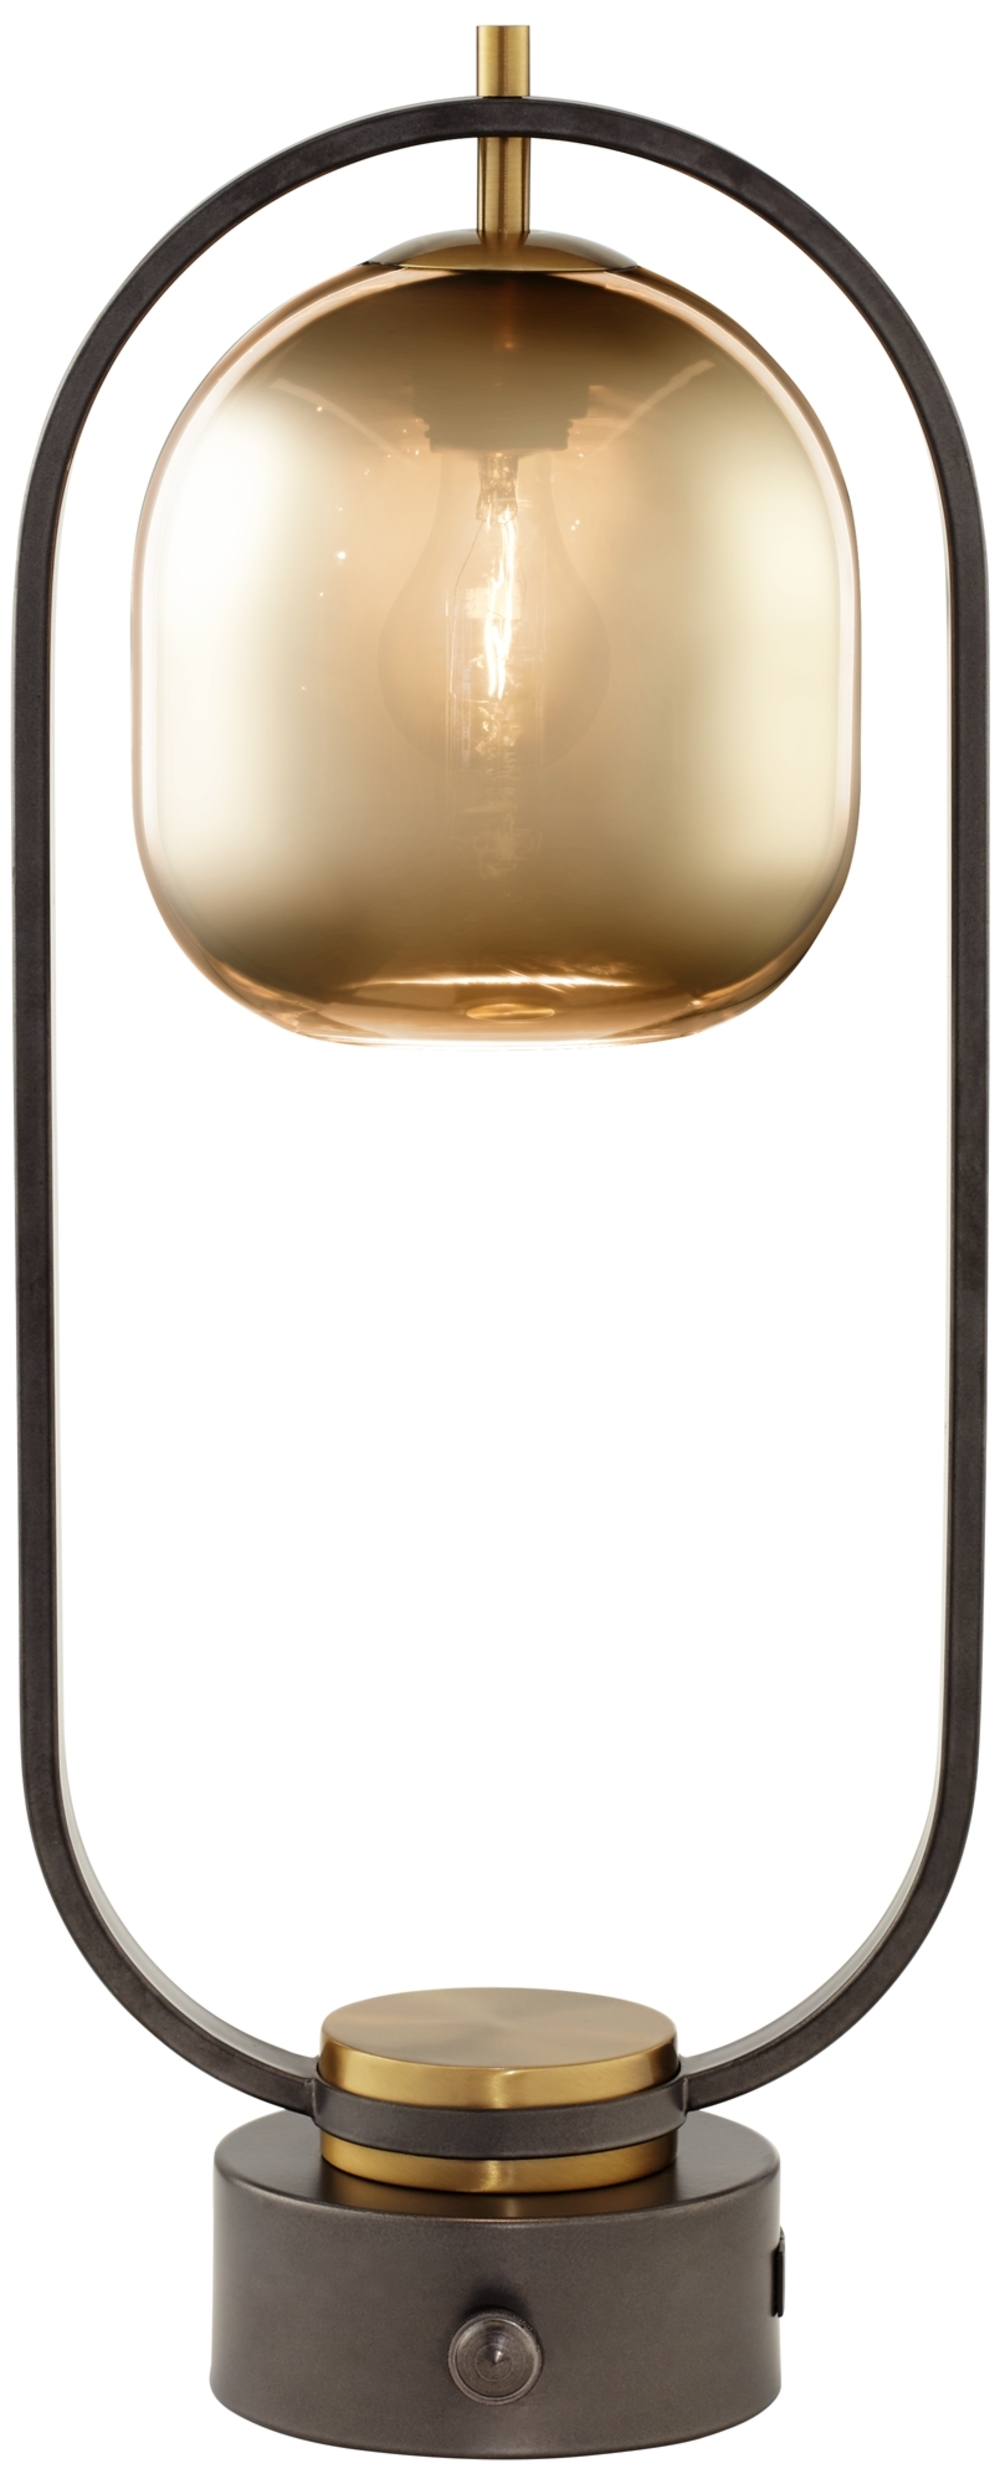 Pacific Coast Lighting - Downward Facing Glass Dome Table Lamp